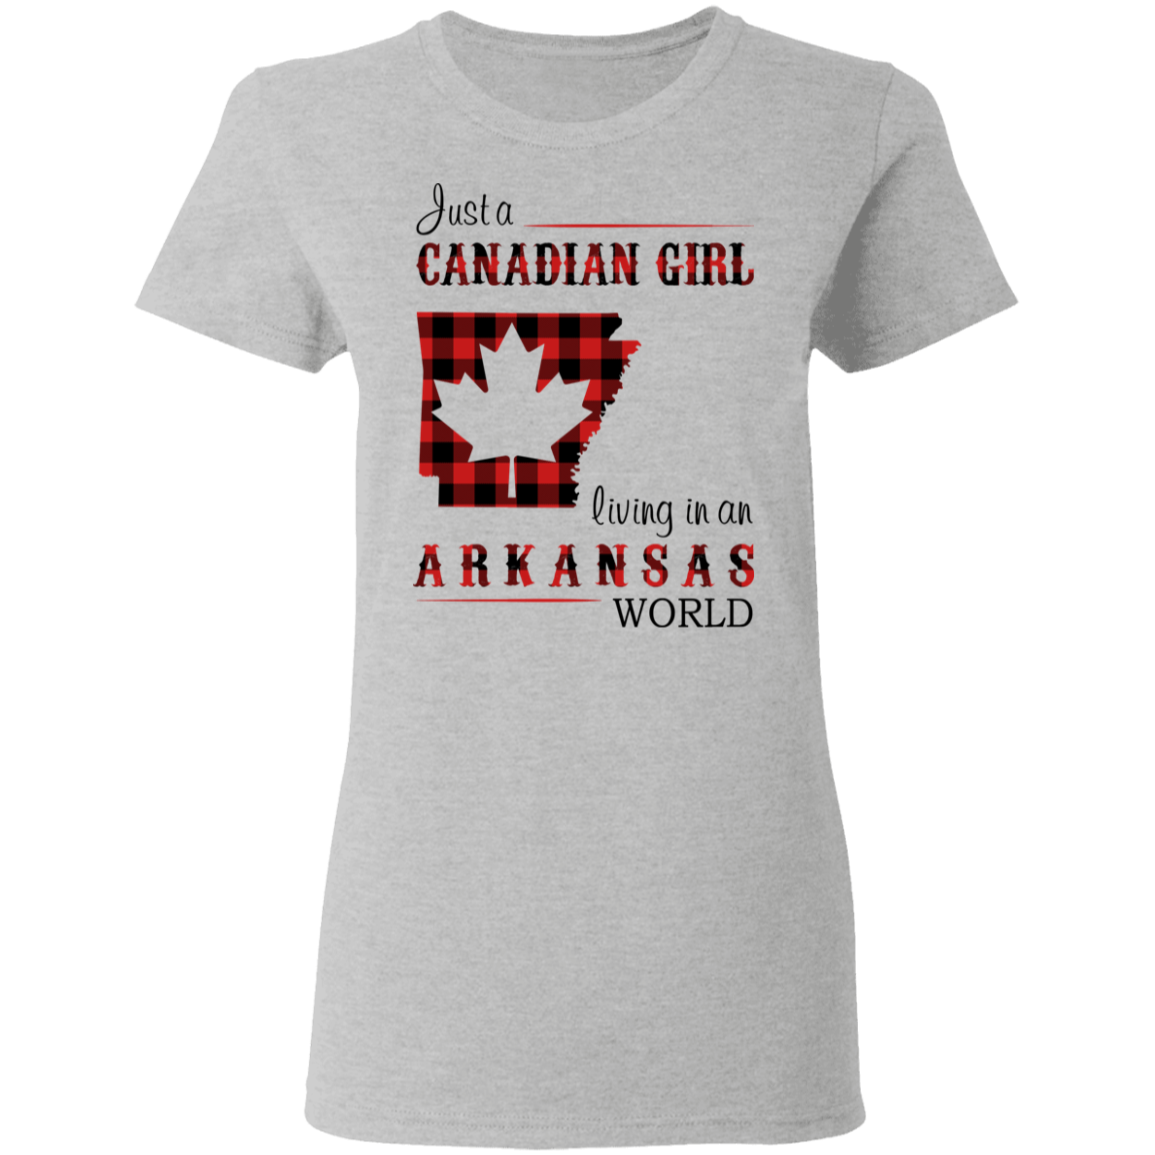 JUST A CANADIAN GIRL LIVING IN AN ARKANSAS WORLD